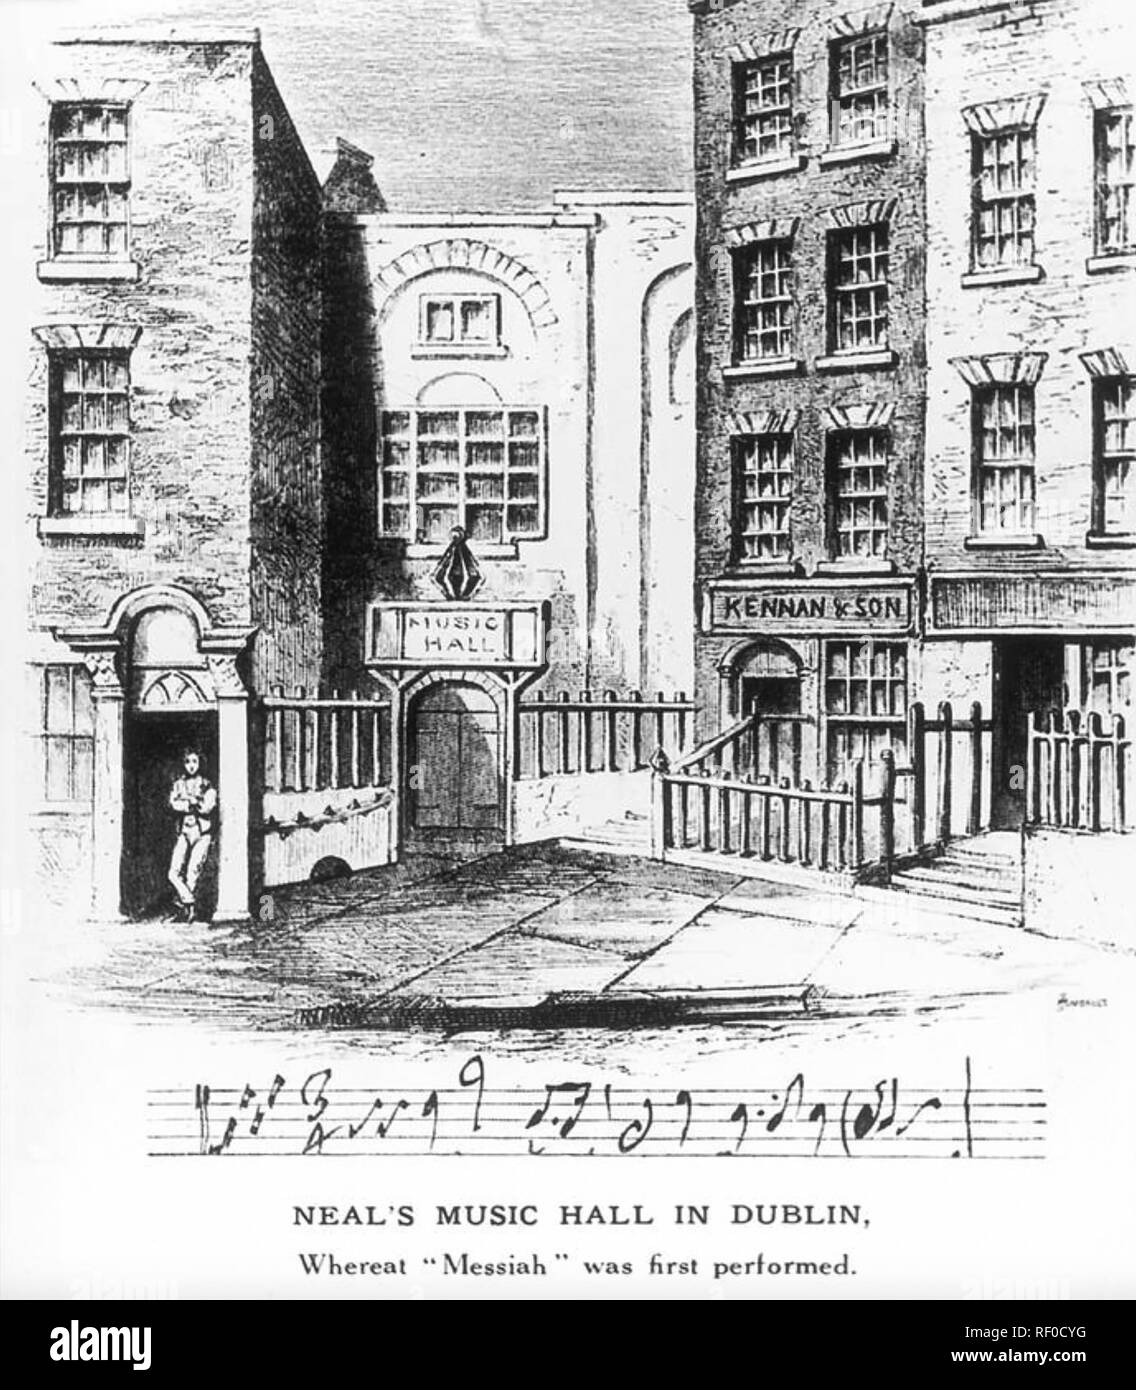 NEAL'S MUSICK HALL,Fishable Street,Dublin. Handel's Messiah received its first performance here on 13th  April 1742 Stock Photo